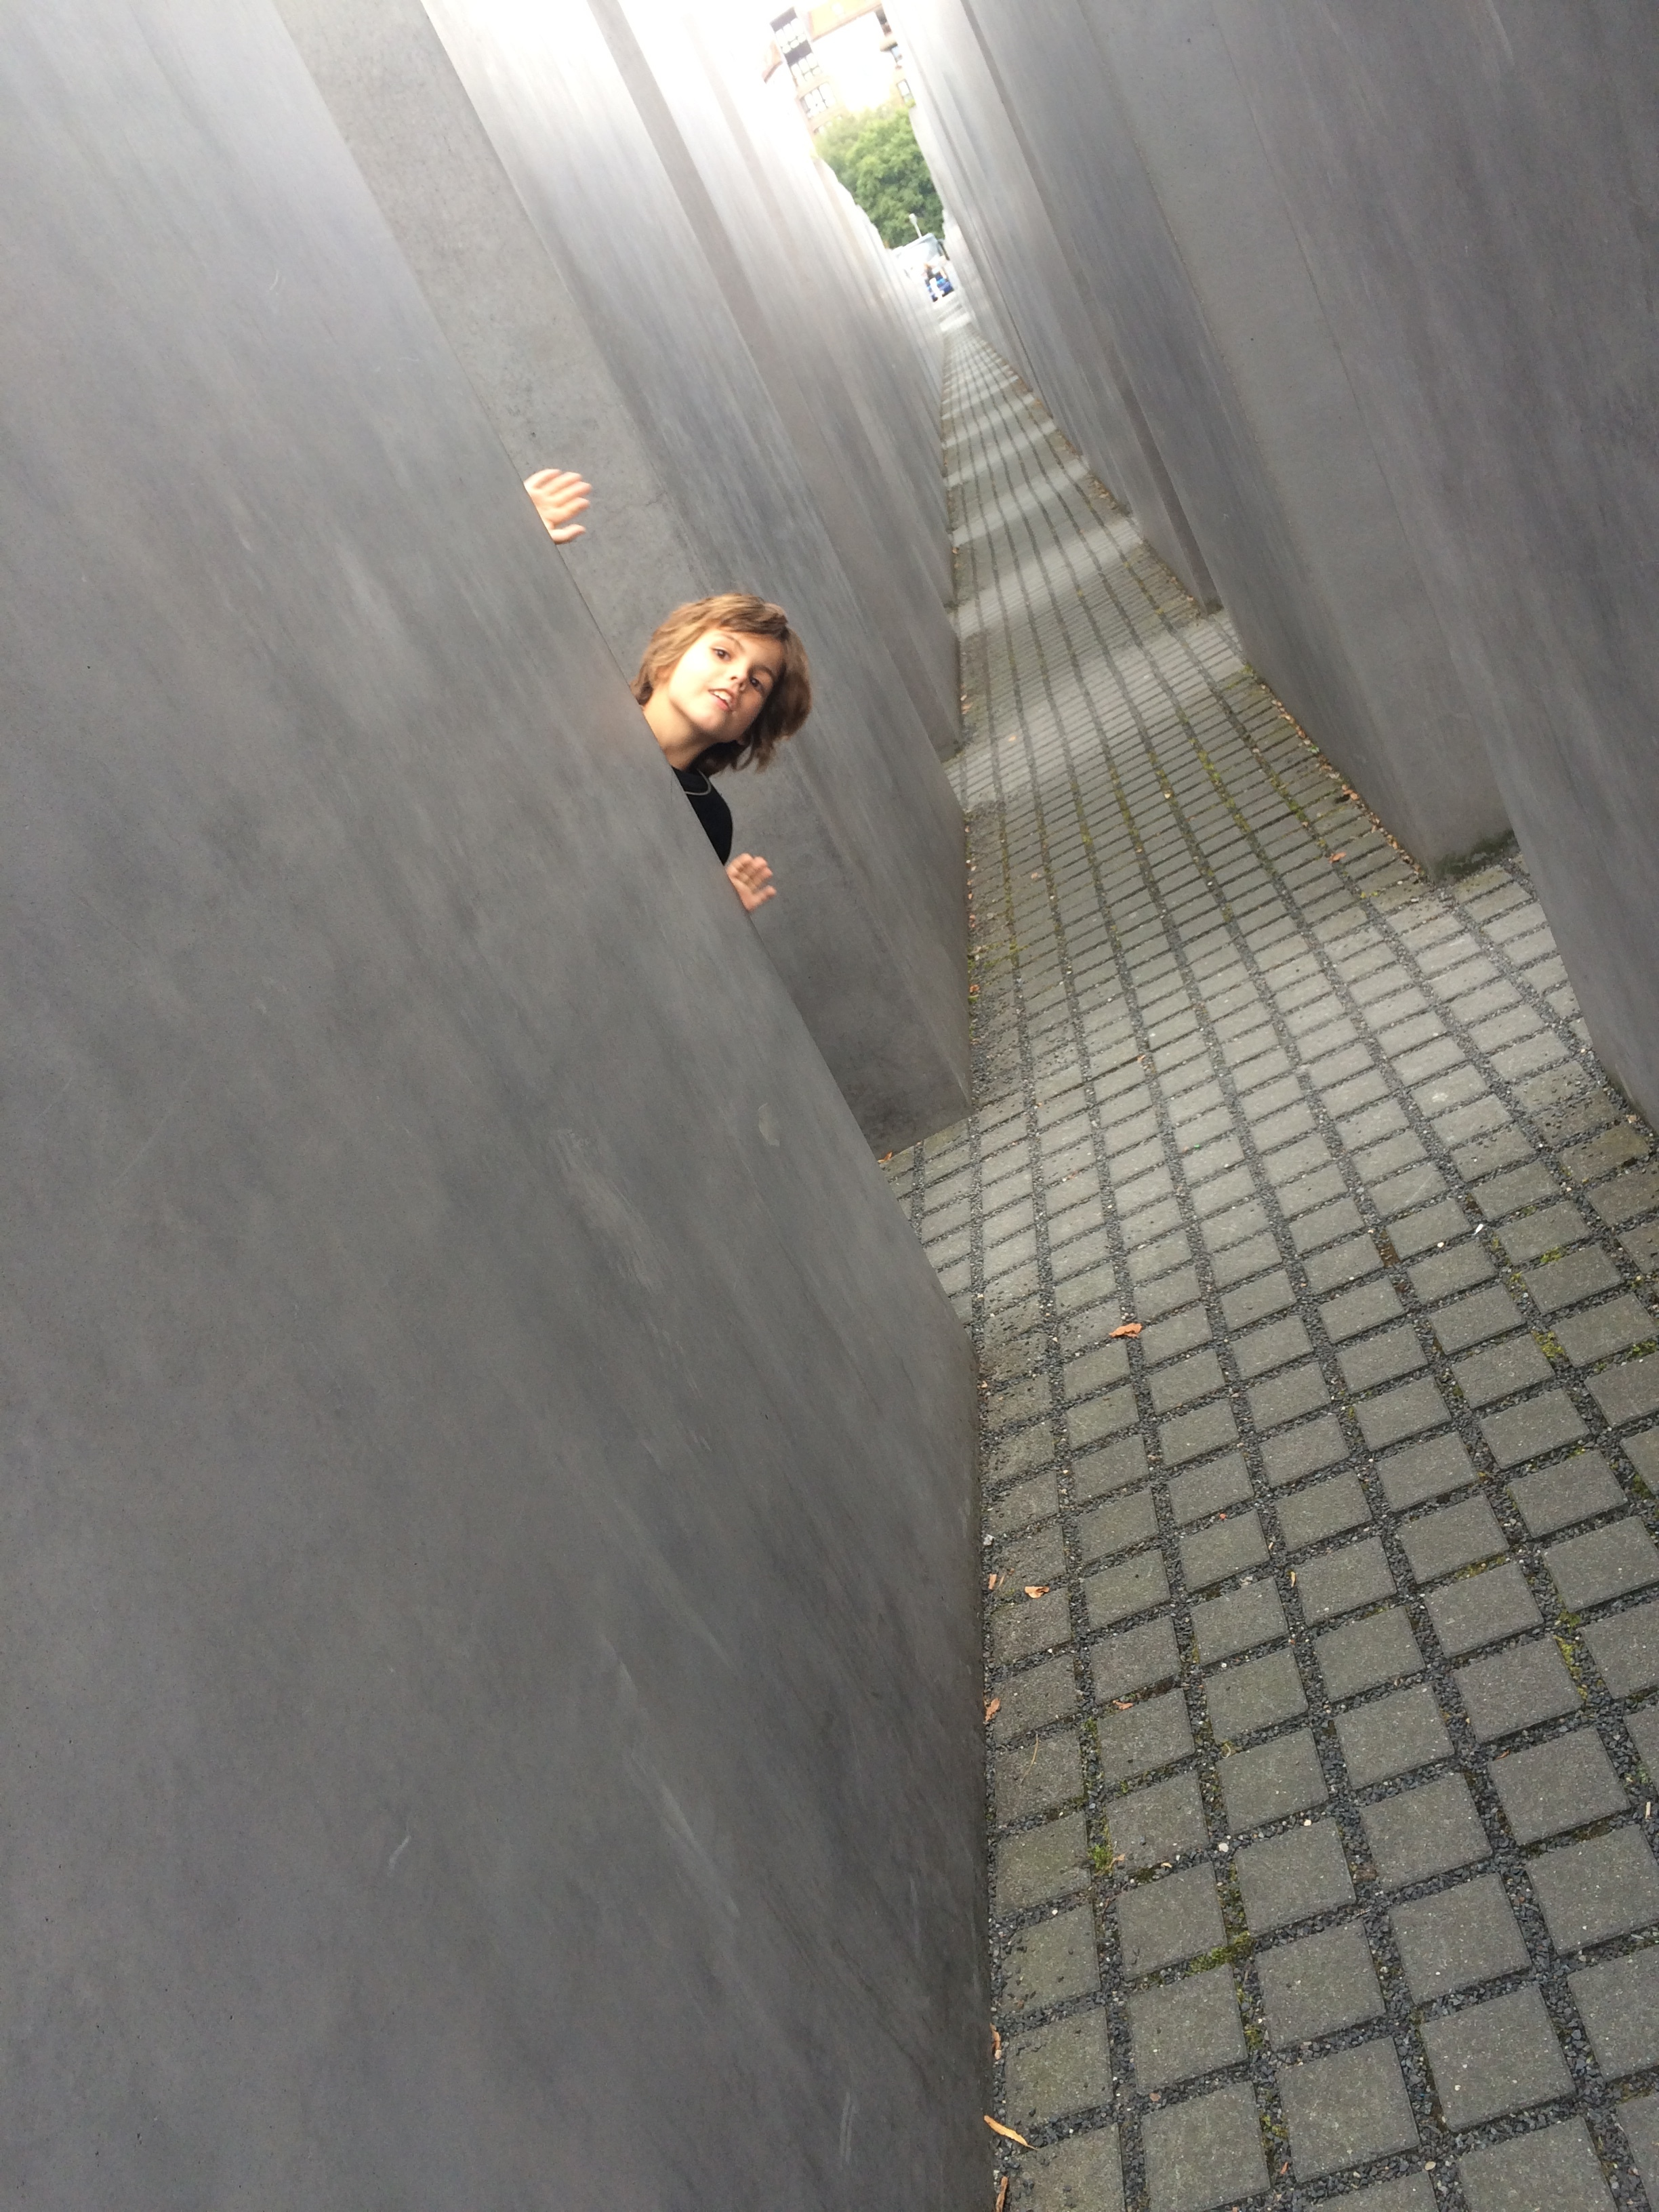 This was a massive monument. It in the middle of berlin. A monument is a structure that allows us to remember a certain event or person. It was like a maze there. It was awesome. However, it was sad because this monument is dedicated to the millions of murdered jews in Europe. This happened in second world war. It was called the Holocaust.